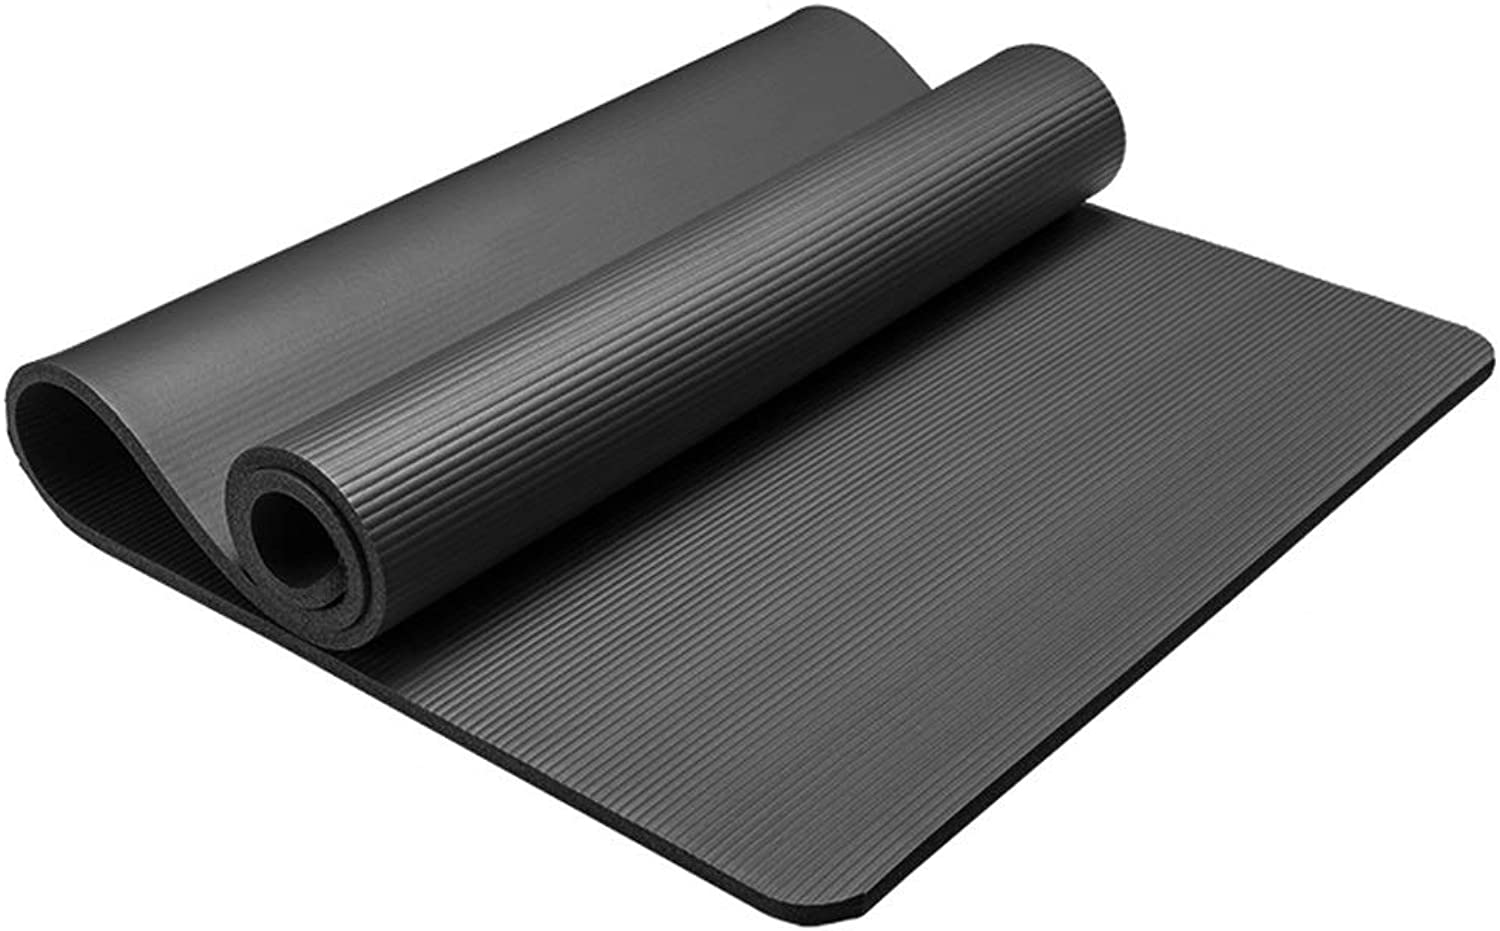 Fgtree Large Space Safe Comfortable High Rebound Yoga Mat, Home Beginners Men Women Yoga Fitness Dance Mats, Non-Slip Tear Resistant Easy to Clean Yoga Mat